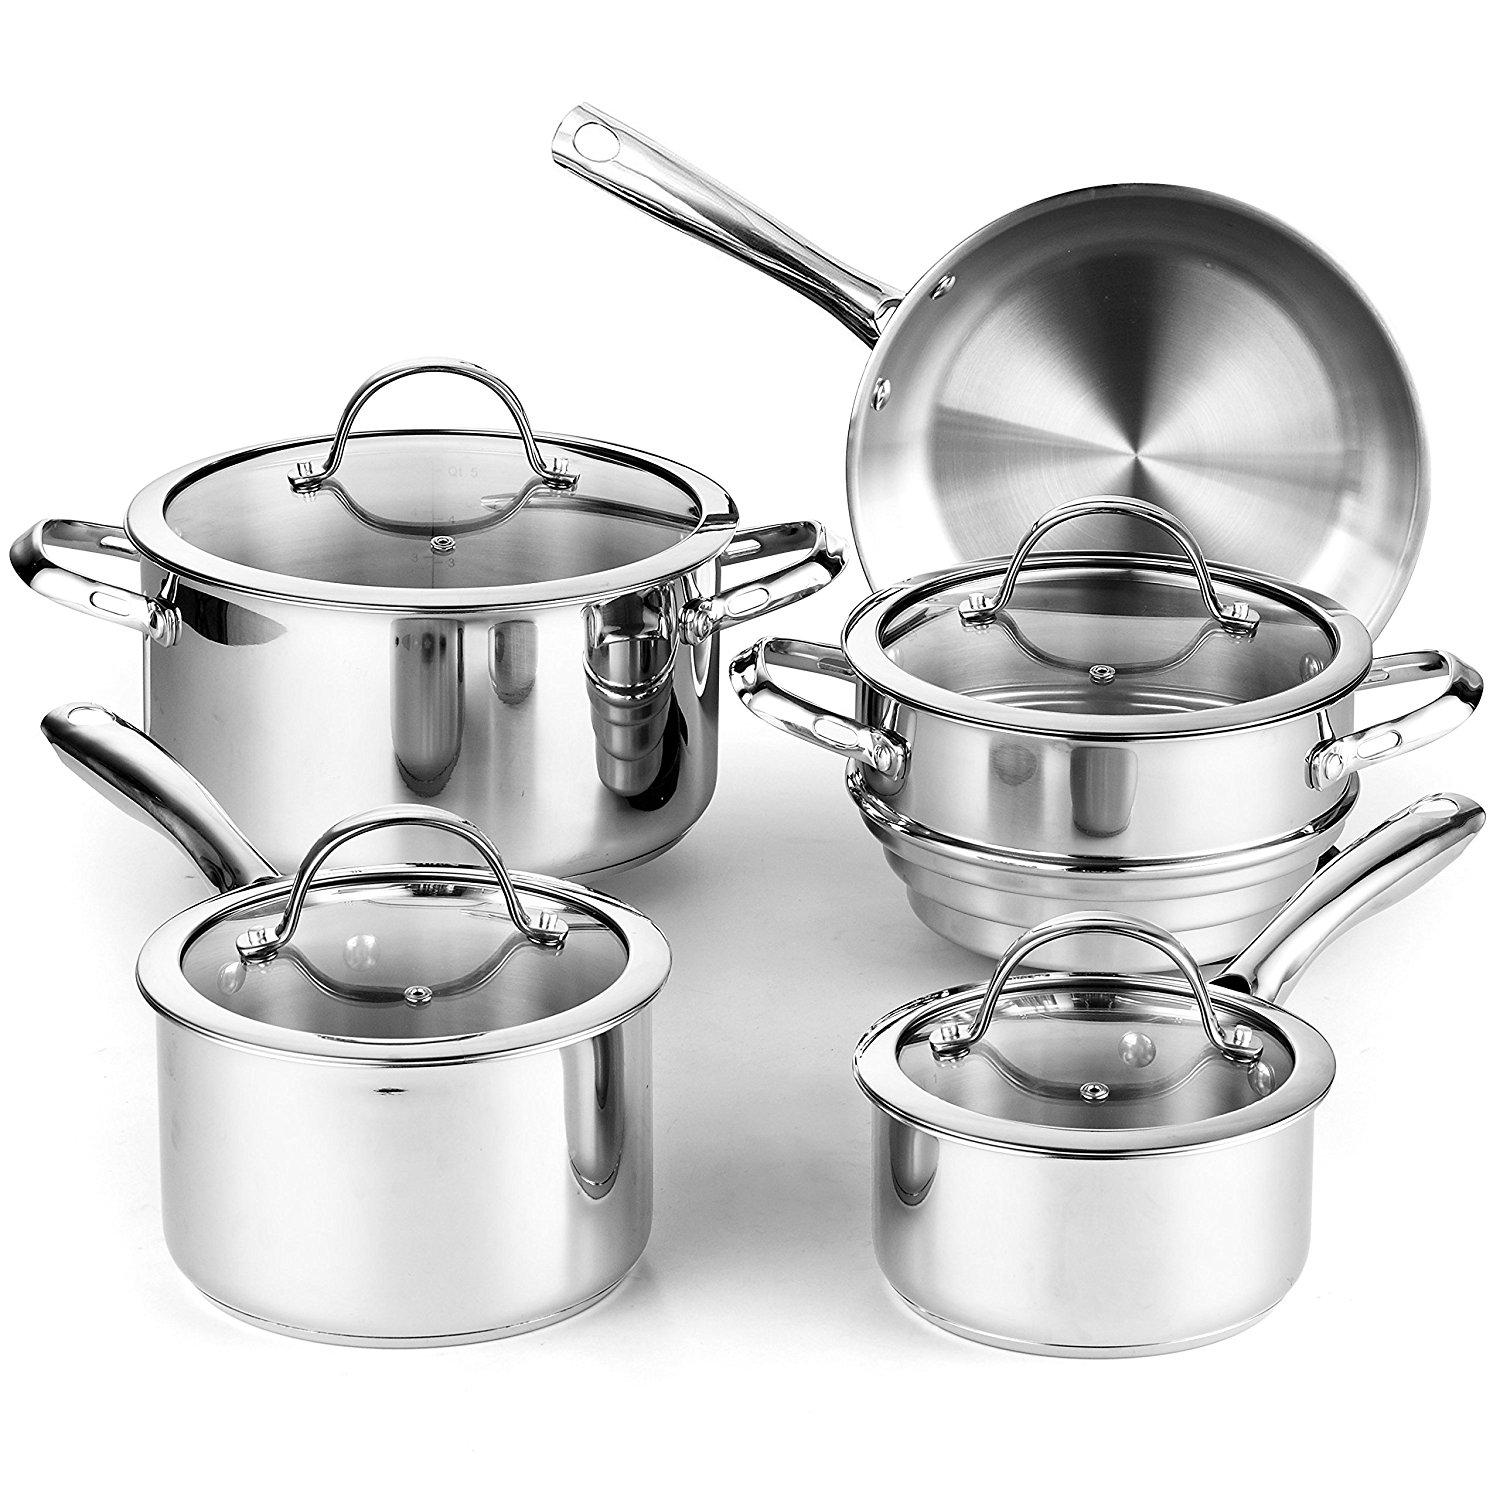 Amazon.com: Cooks Standard 00391 11-Piece Classic Stainless-Steel ...